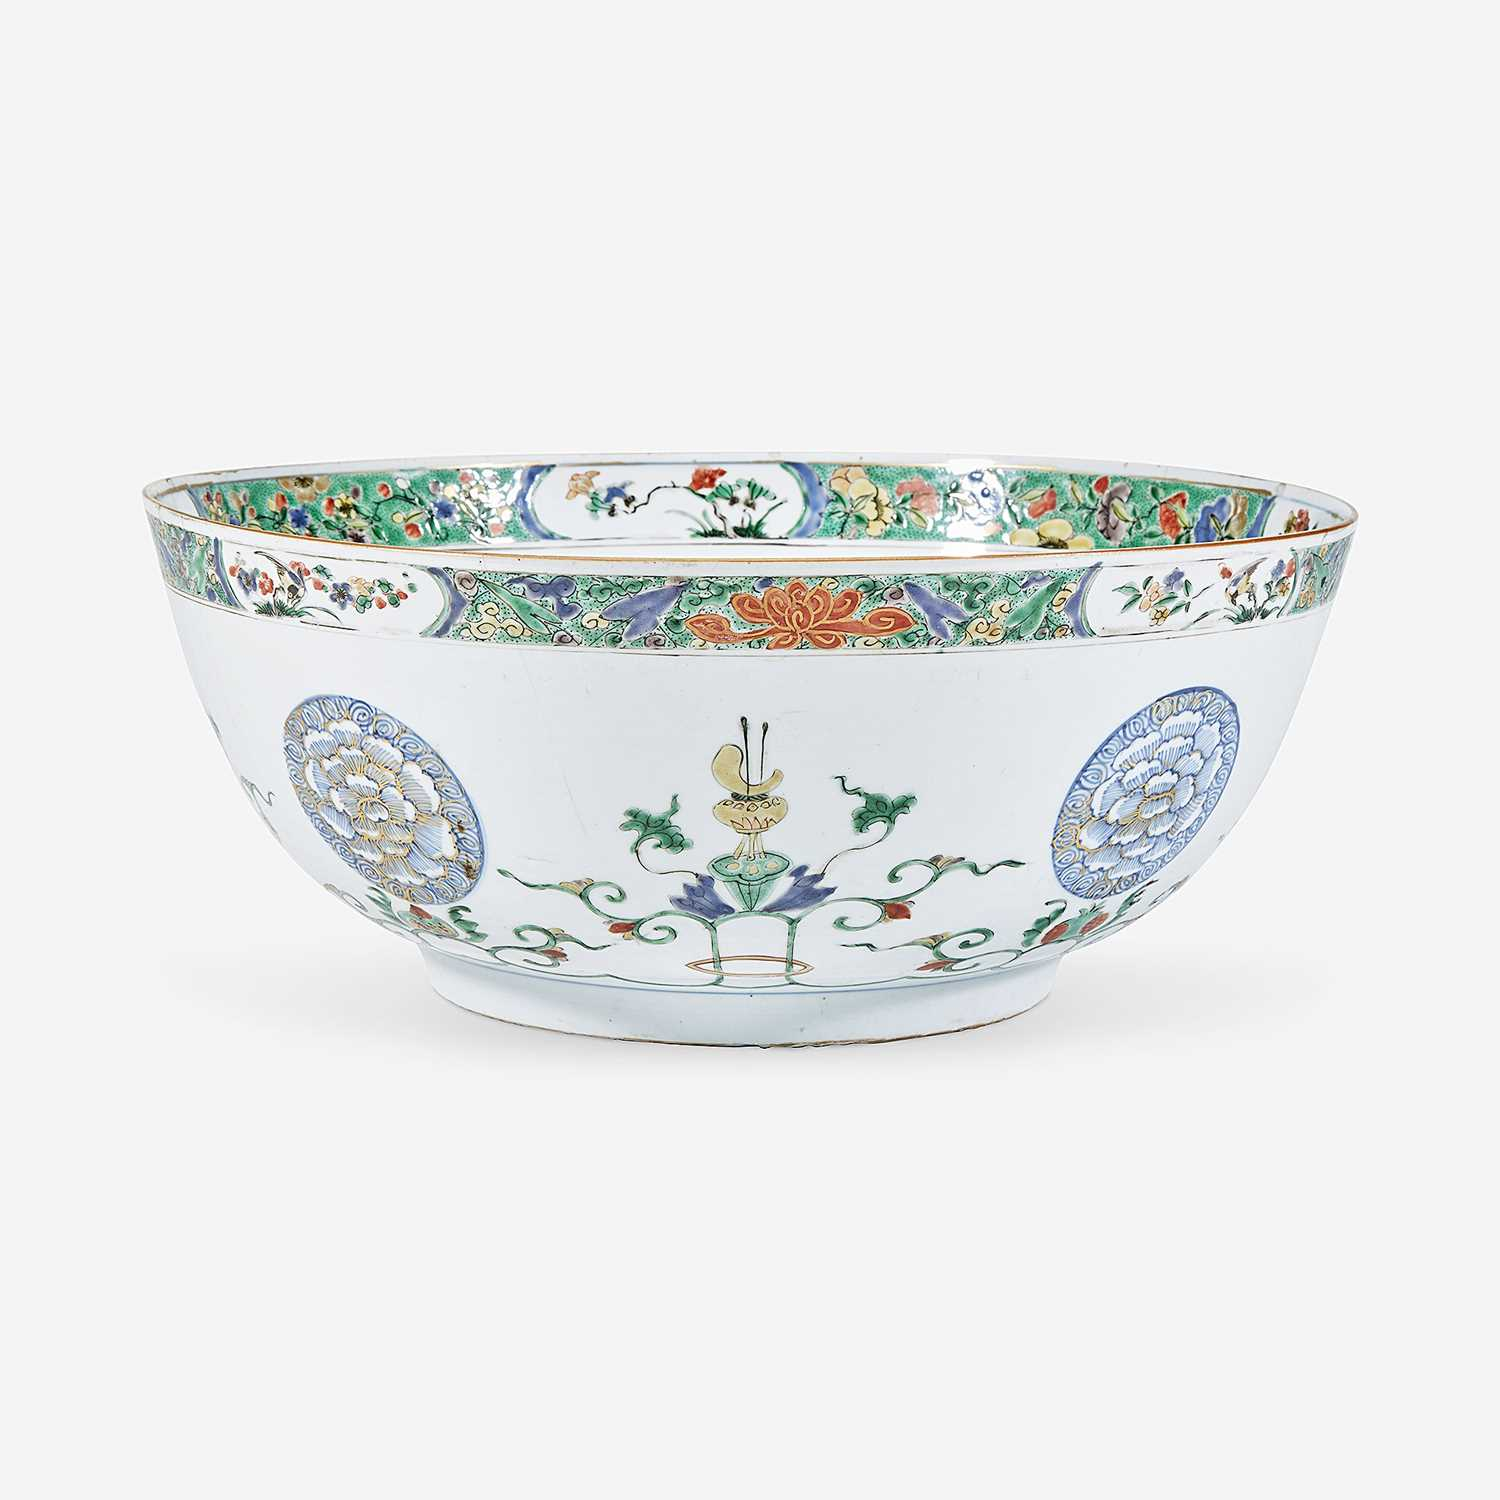 Lot 11 - A Chinese export famille verte-decorated porcelain punch bowl